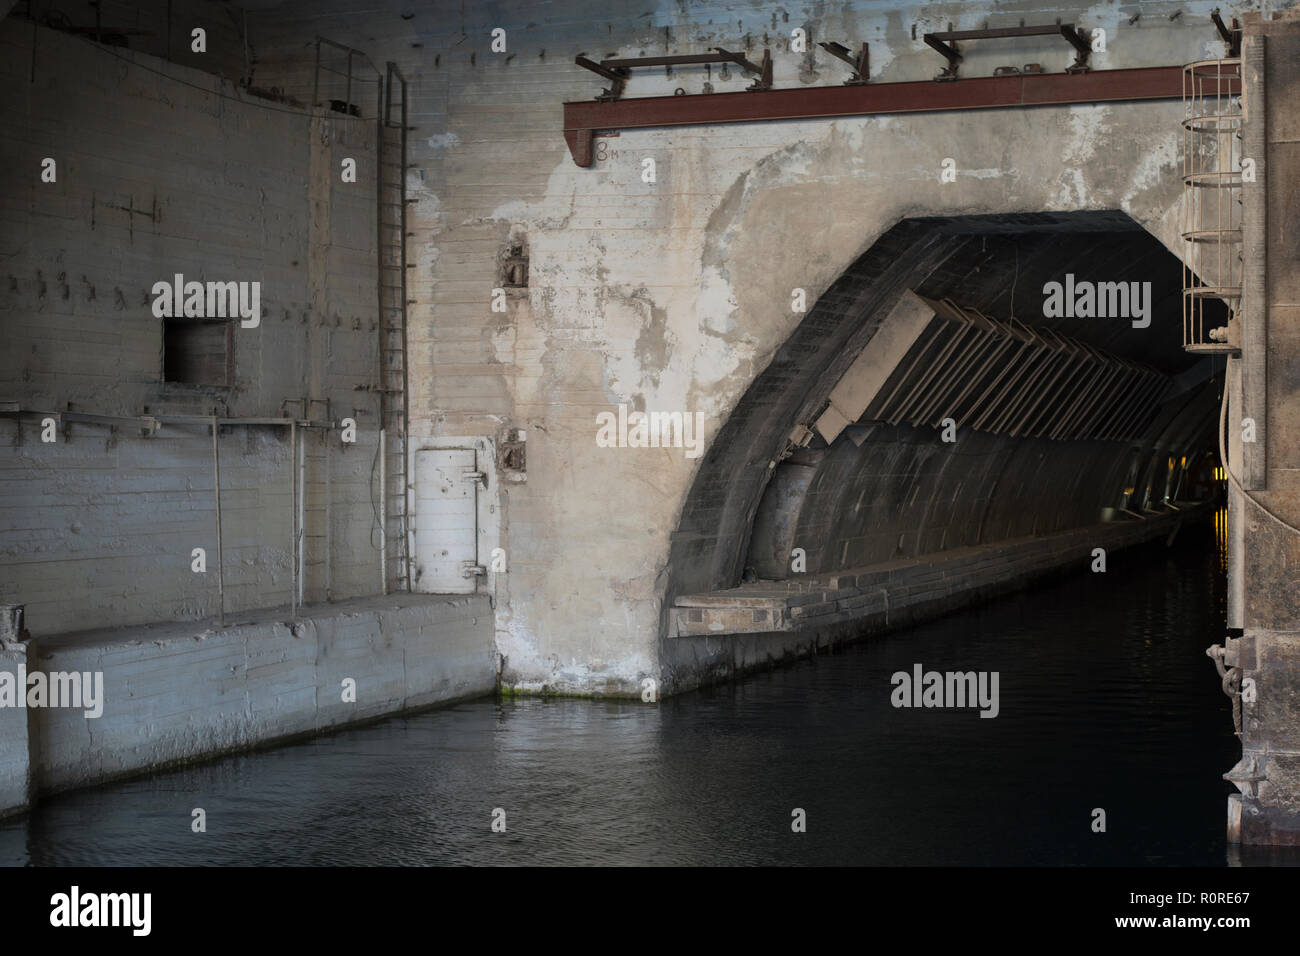 the entrance to the concrete bunker with the entrance from the water side. entry for ships - Stock Image